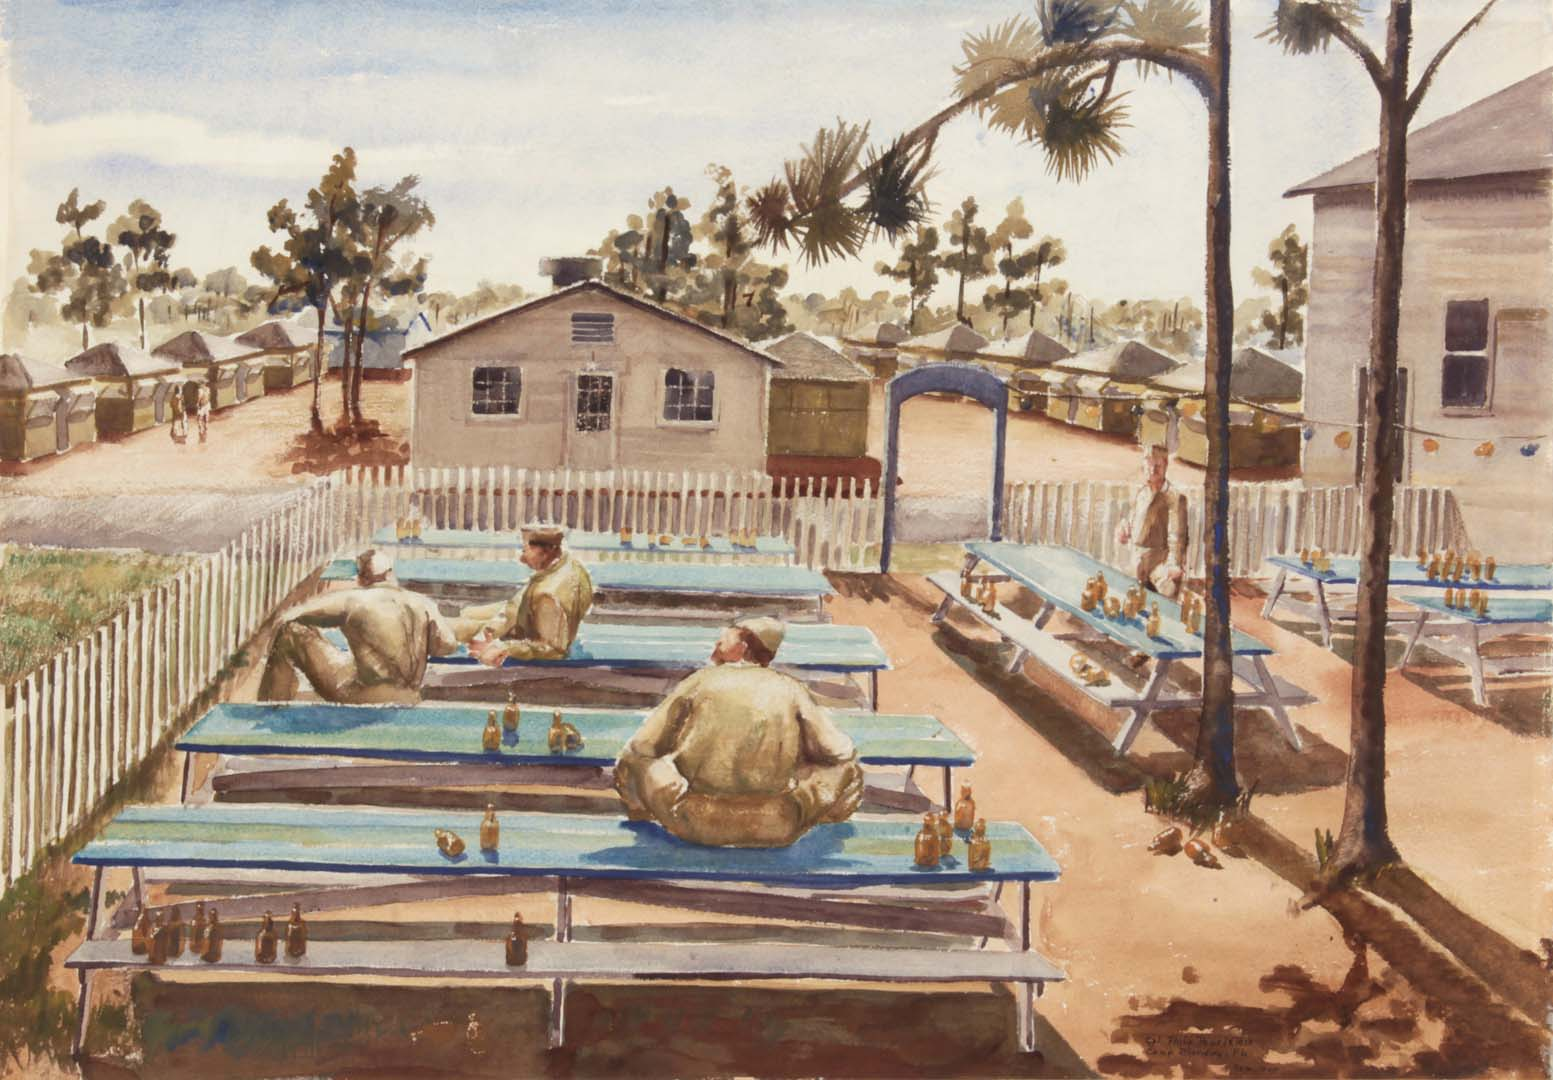 1944 Beer Garden (Camp Blanding Florida) Watercolor on Paper 21 x 30.125